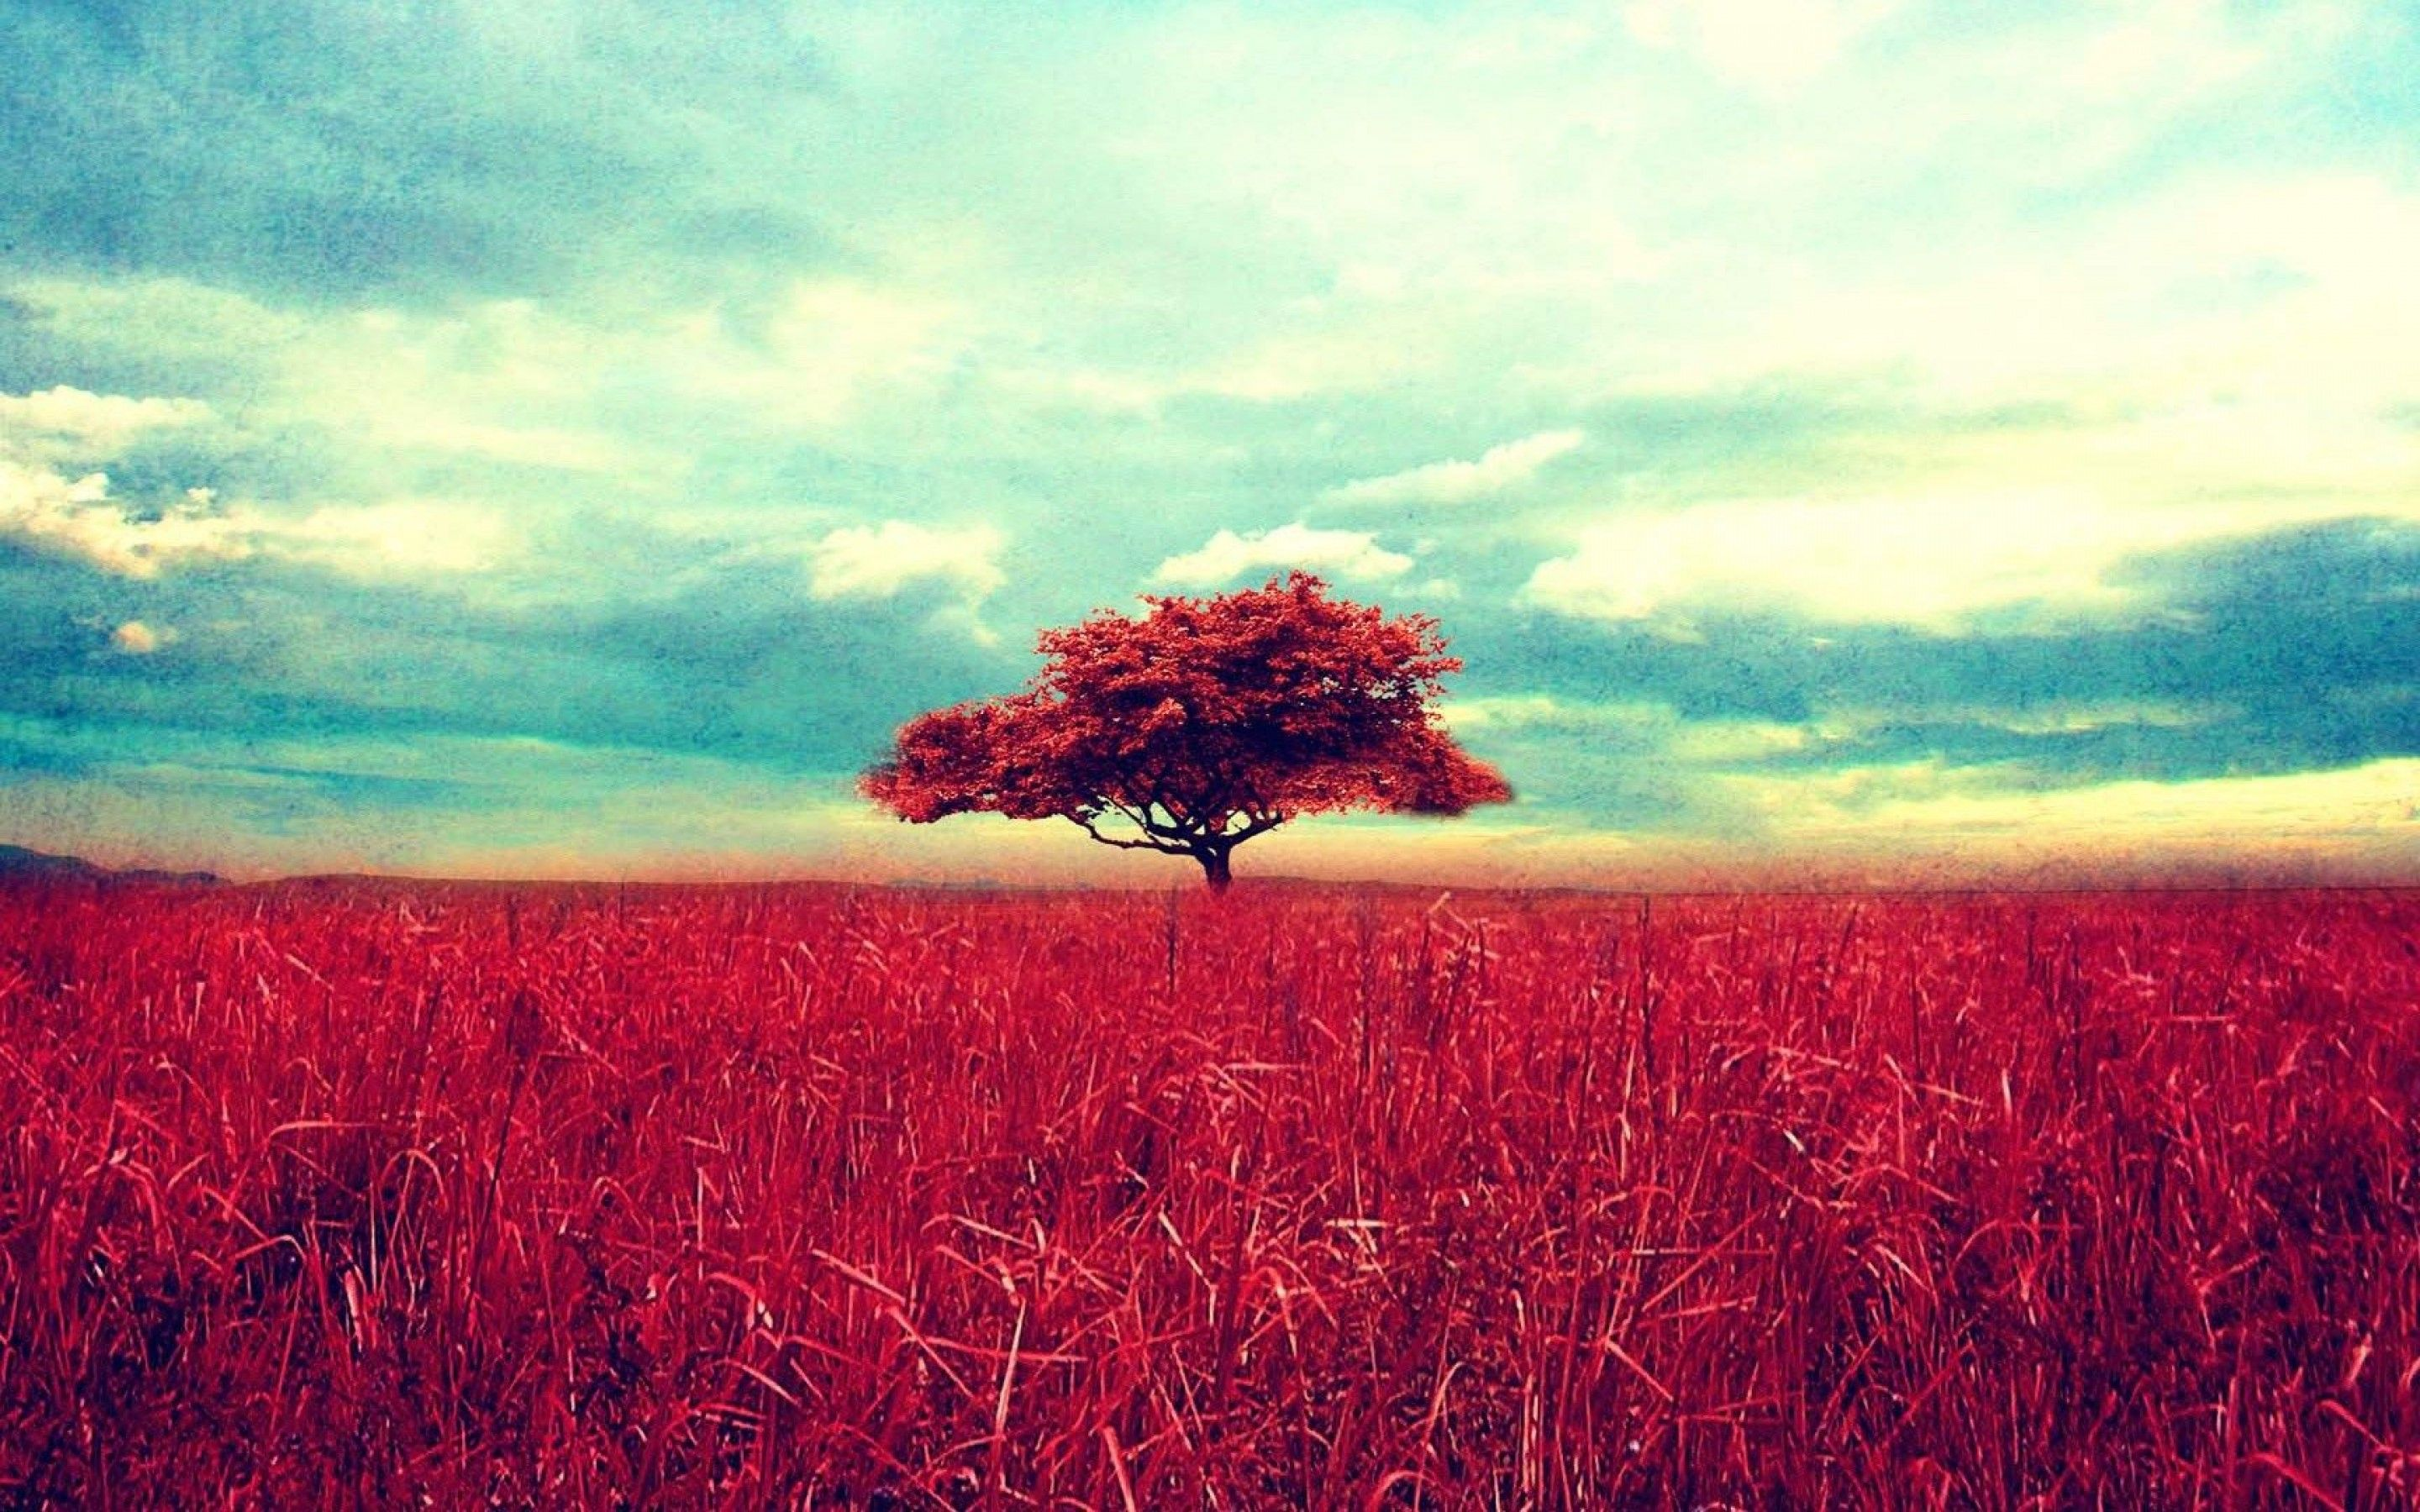 retro red tree and a beautiful wheat field beautiful nature